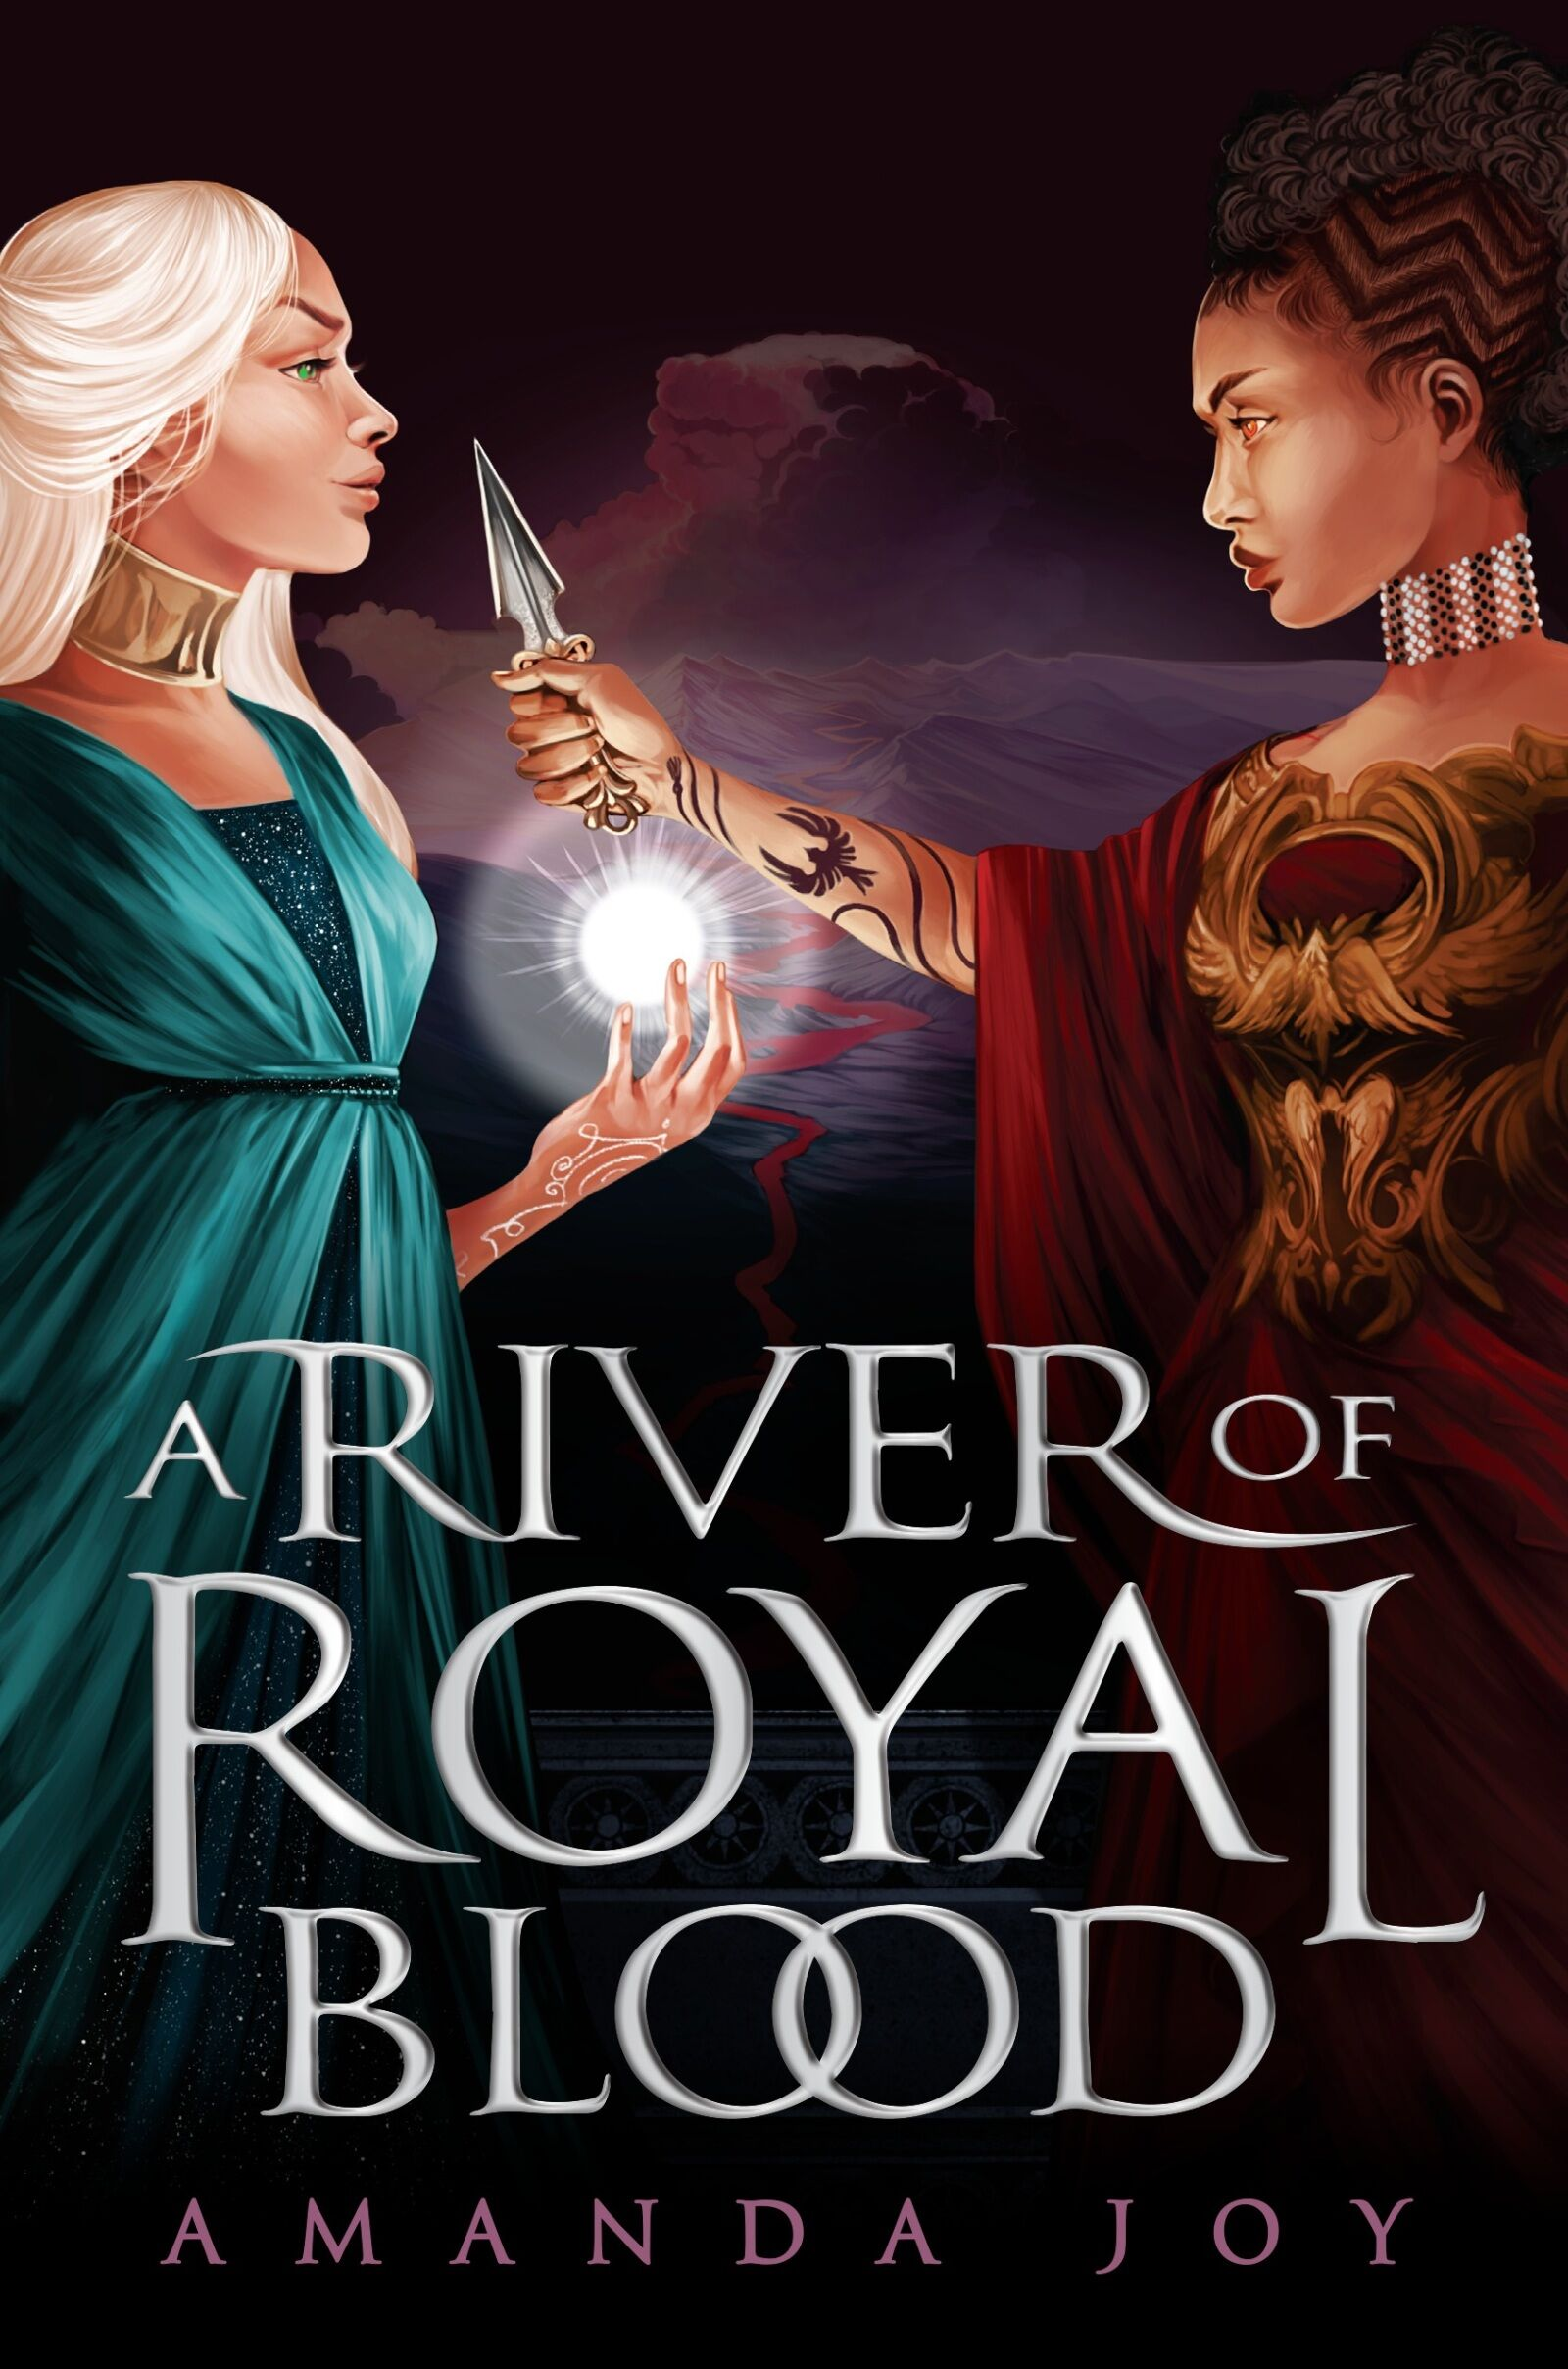 A River of Royal Blood gifts readers with an intricately crafted world full of political intrigue